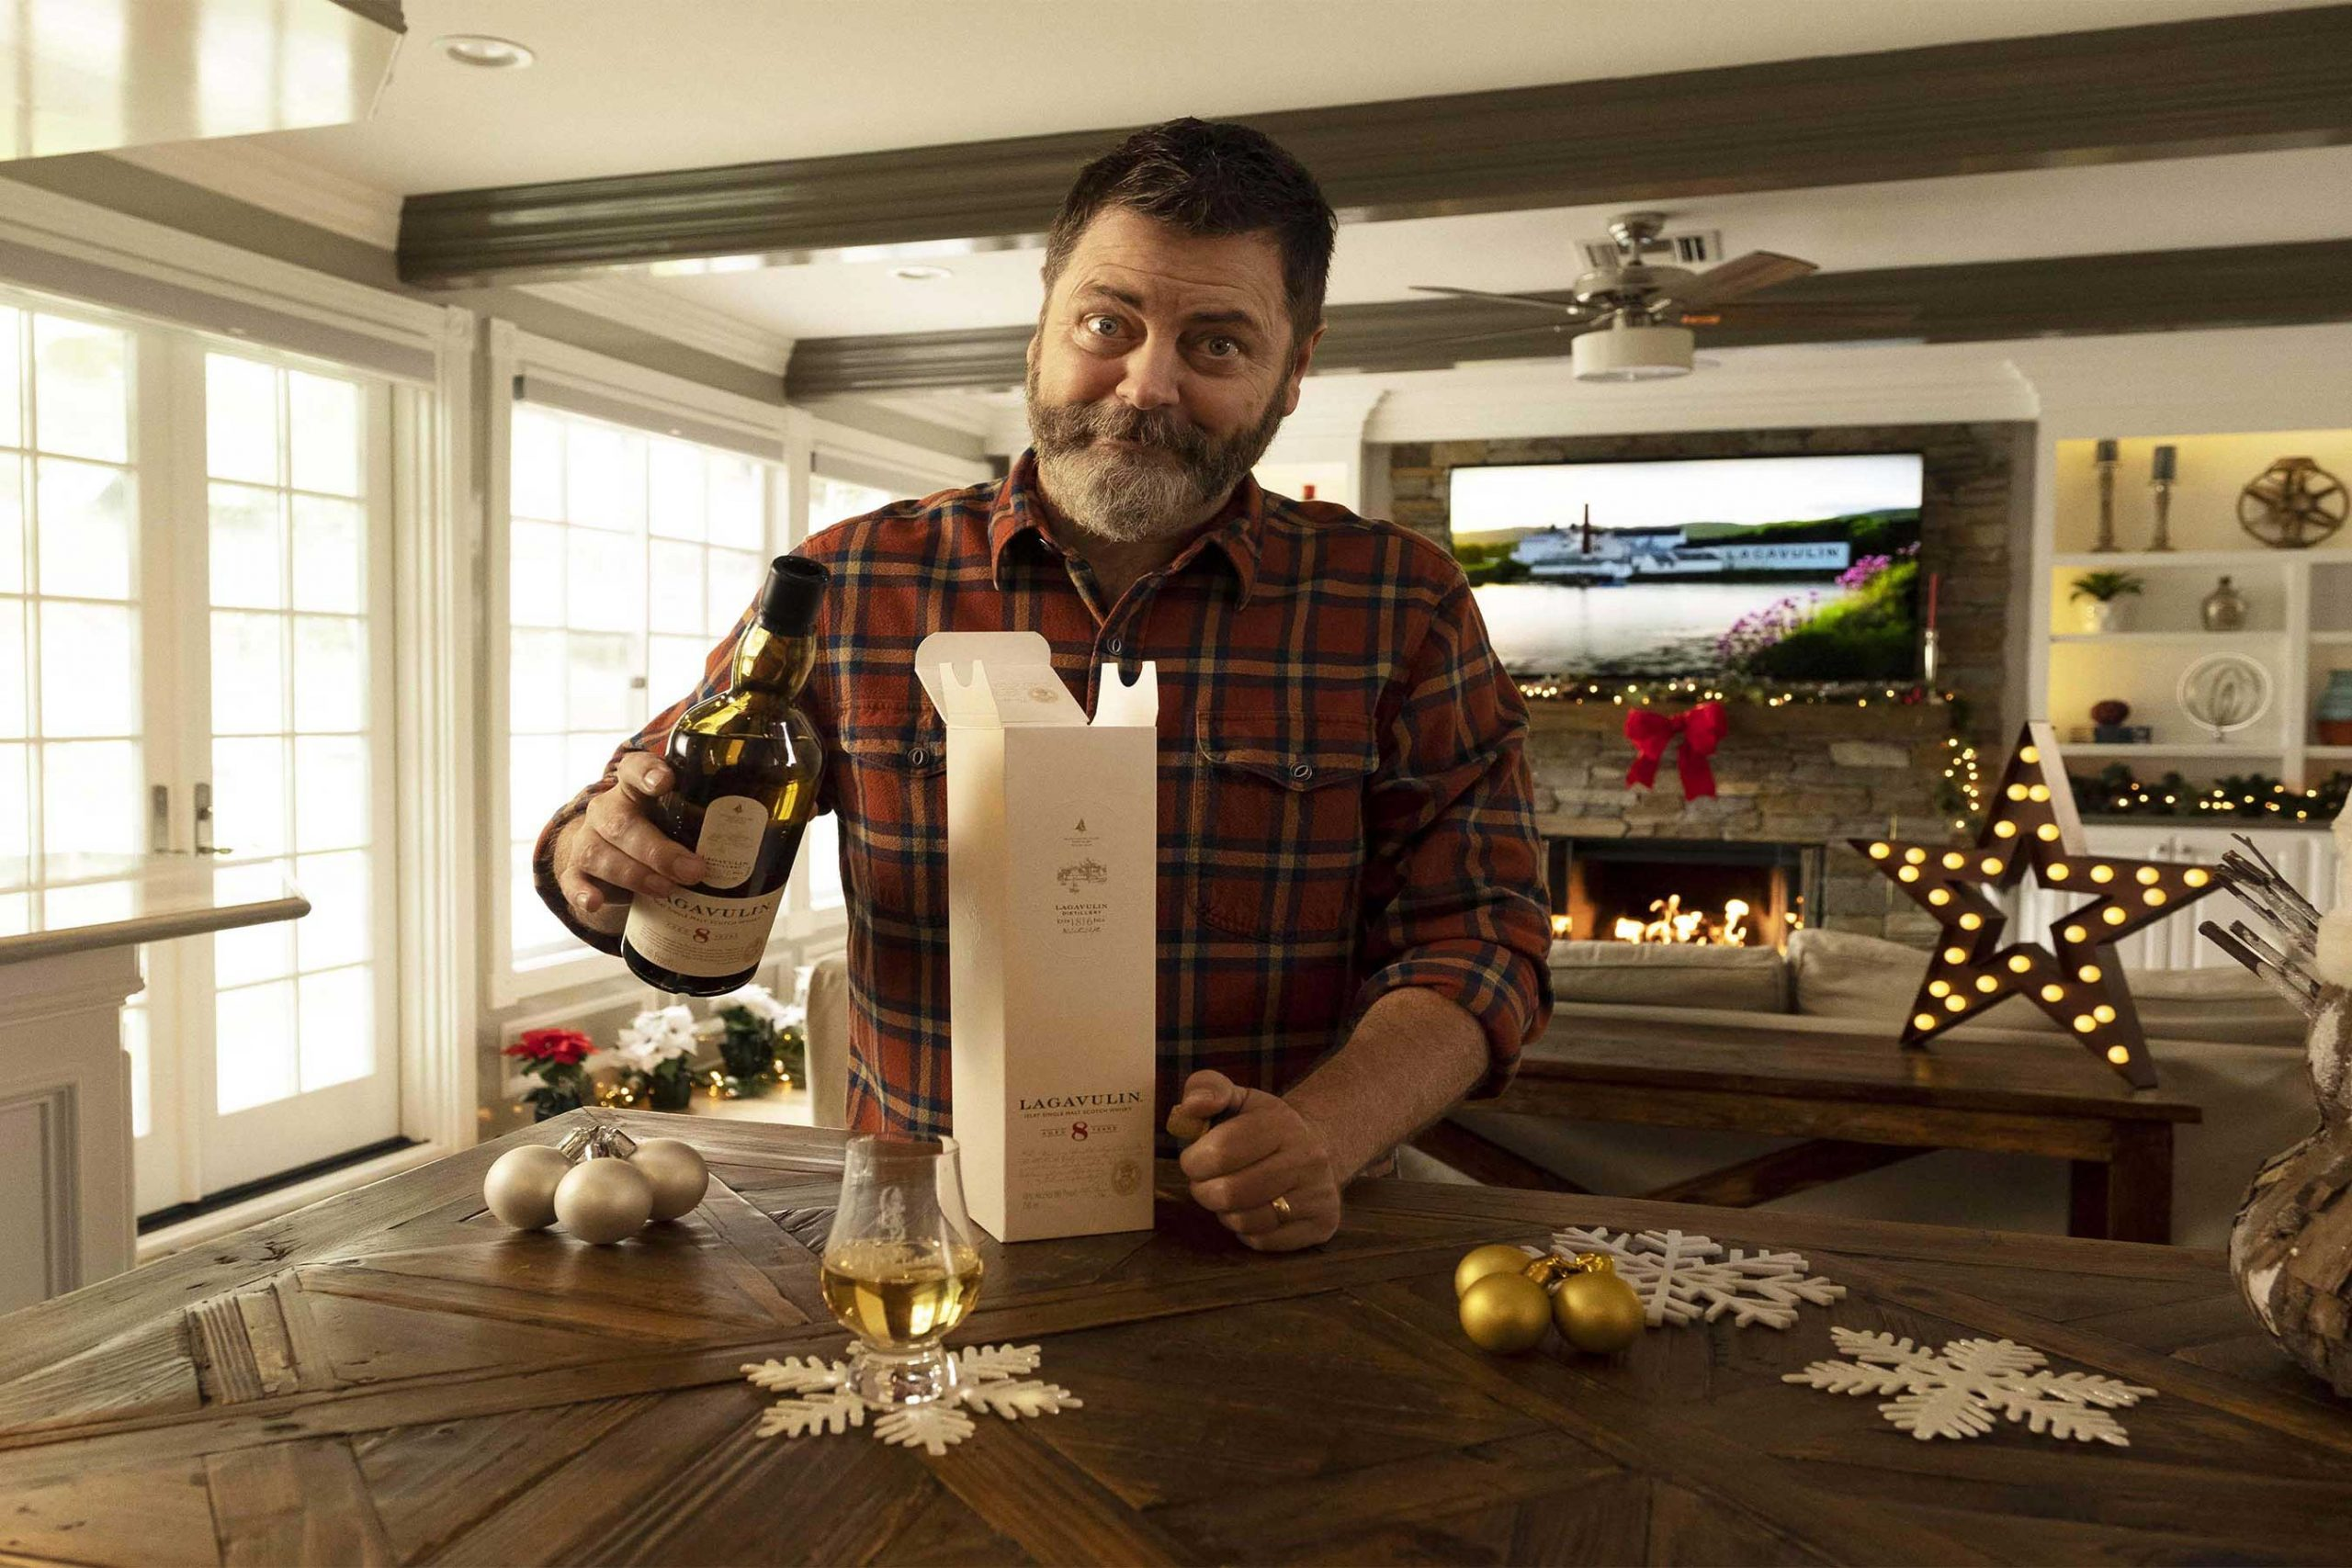 Nick Offerman And Lagavulin Single Malt Scotch Whisky Are Having A Dram Good Holiday At Home photo